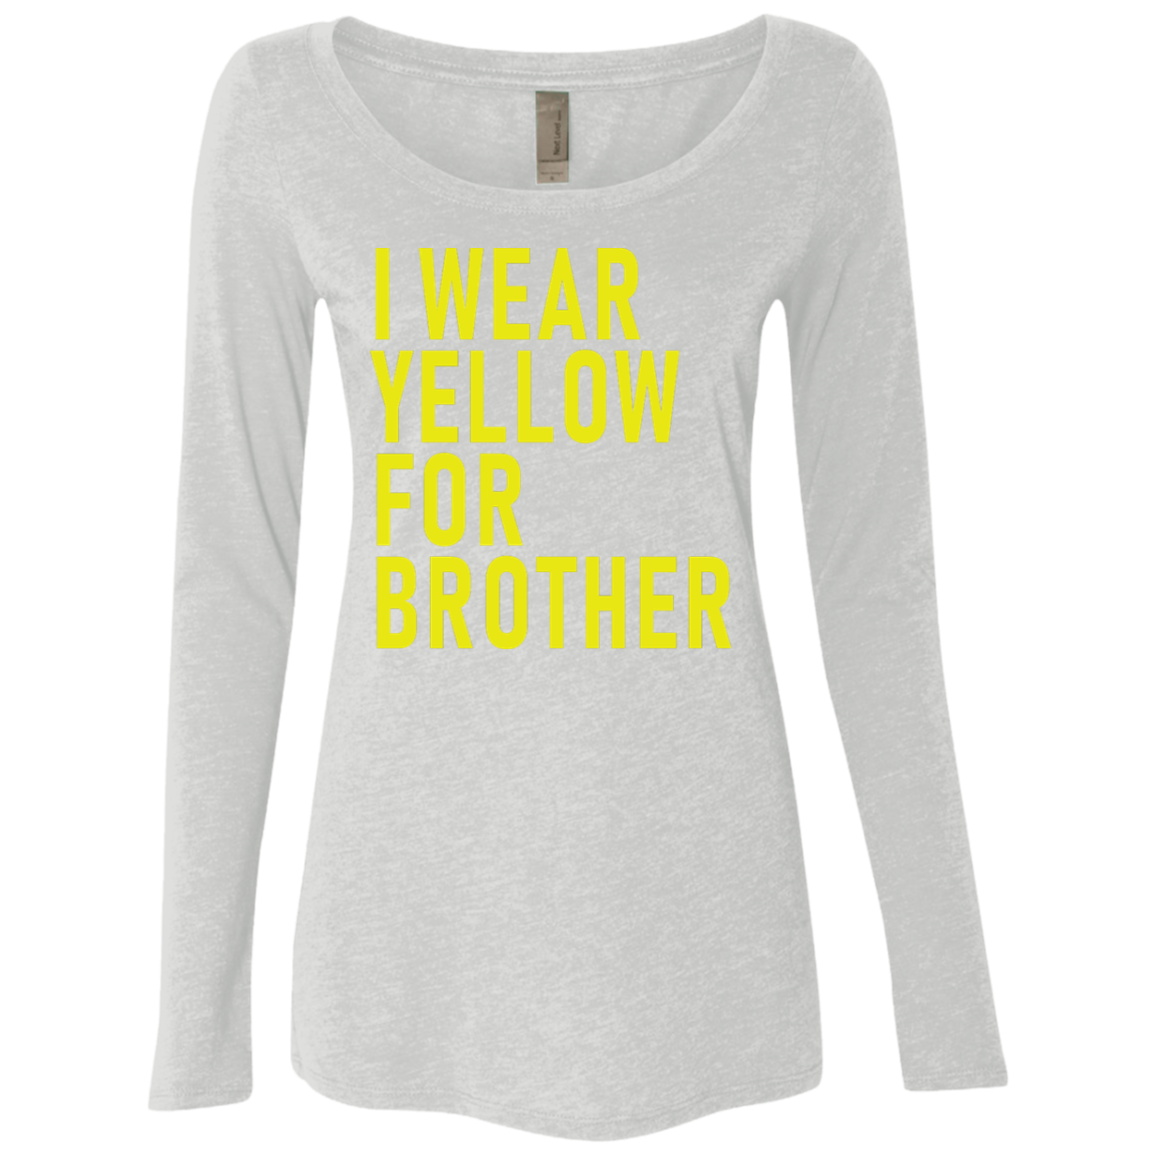 I Wear Yellow For Brother Women's Long Sleeve Tee